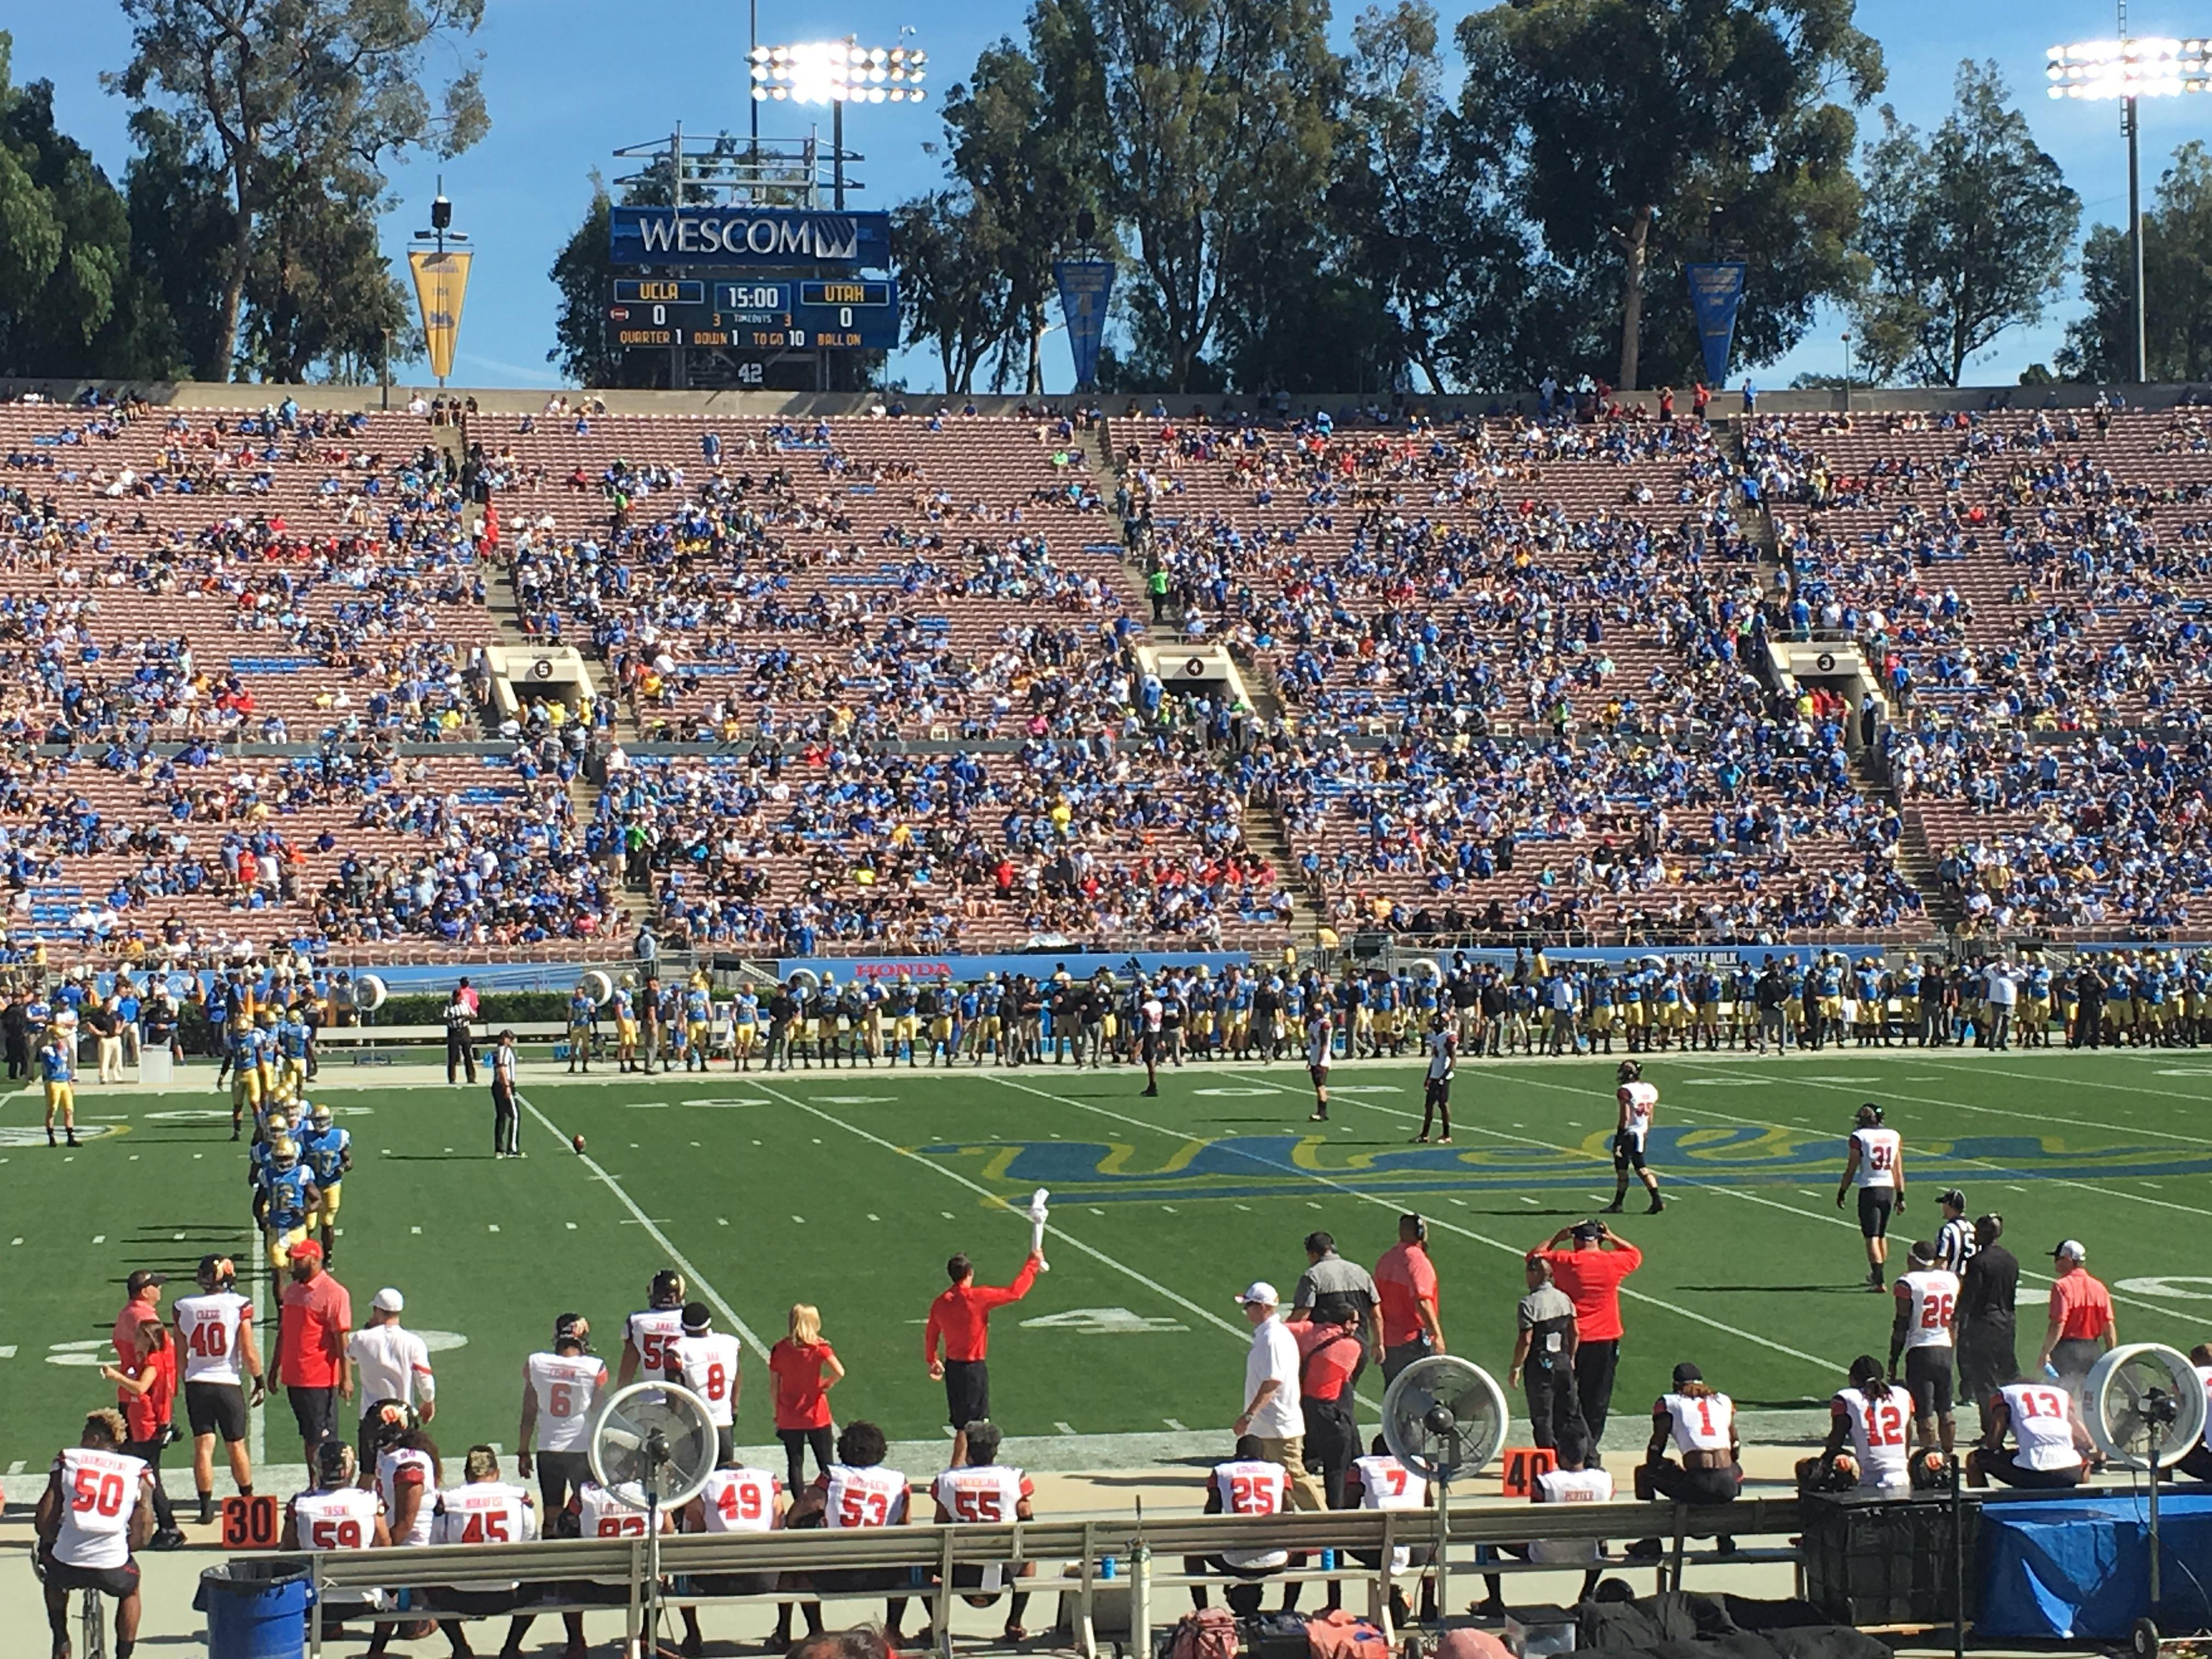 Rose Bowl Section 18-L Row 14 Seat 17